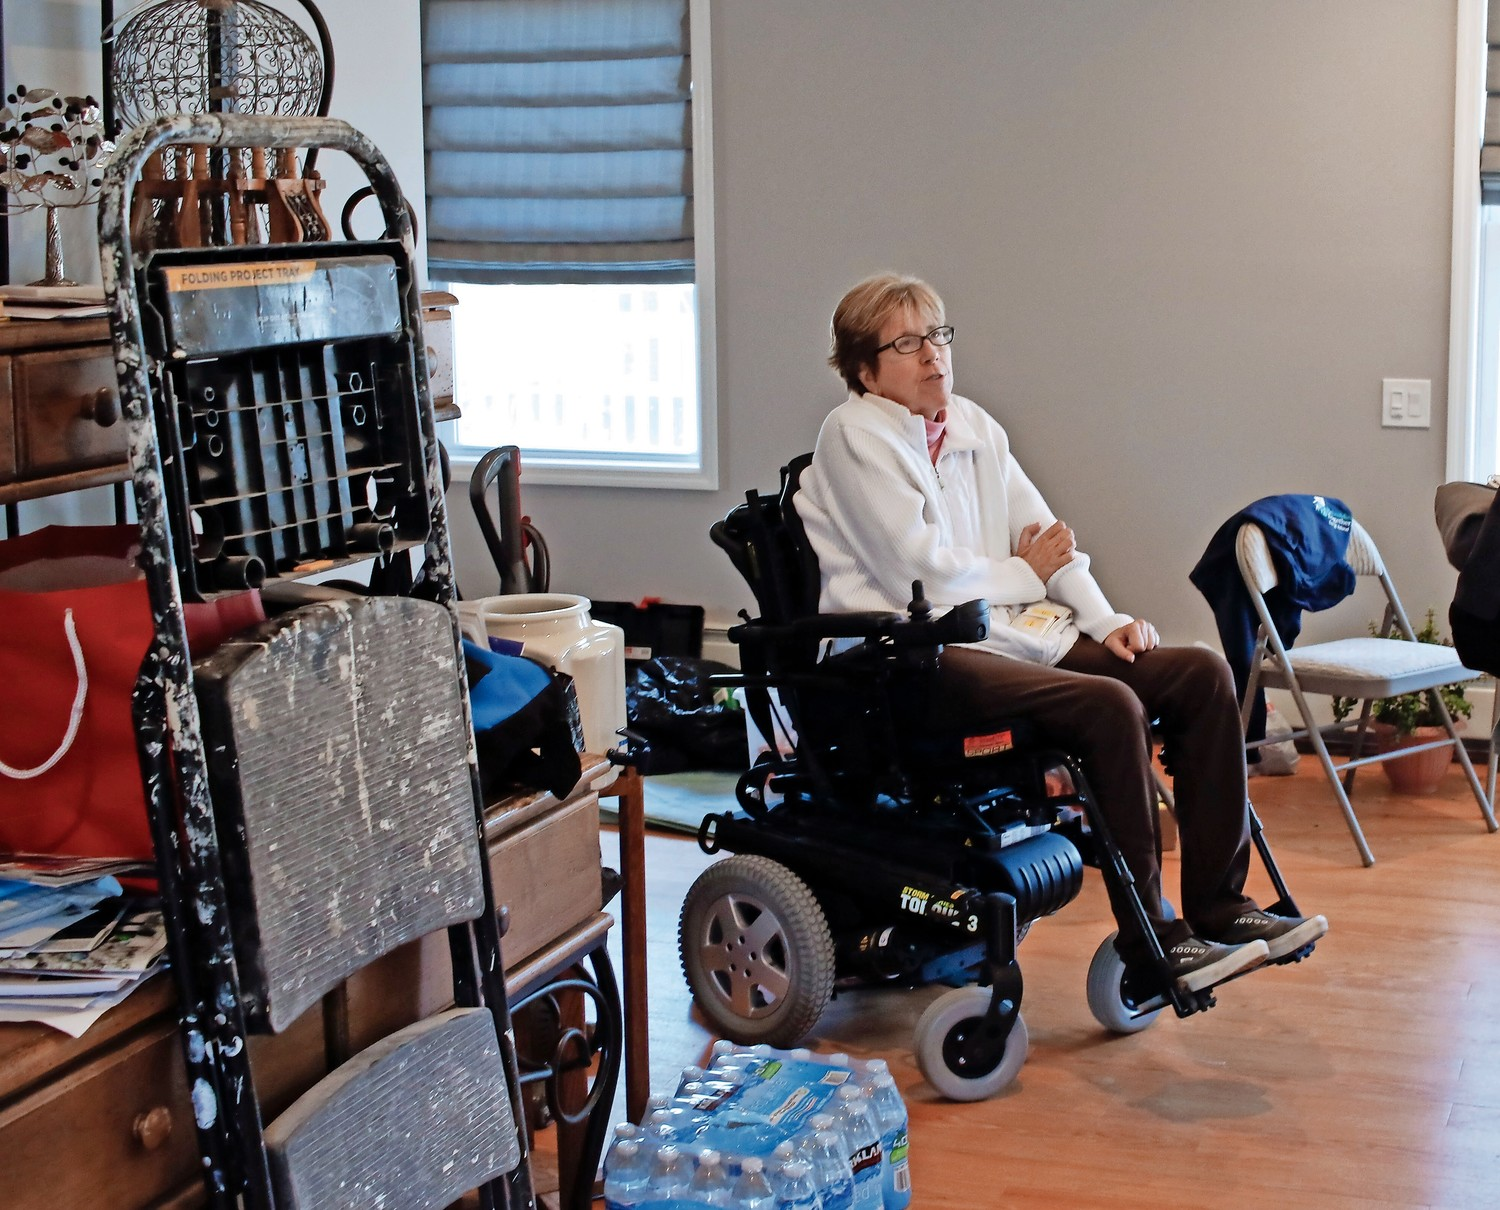 West End resident Liz Treston is known around town as an advocate for people with disabilities as well as those who have struggled with challenges after Hurricane Sandy.